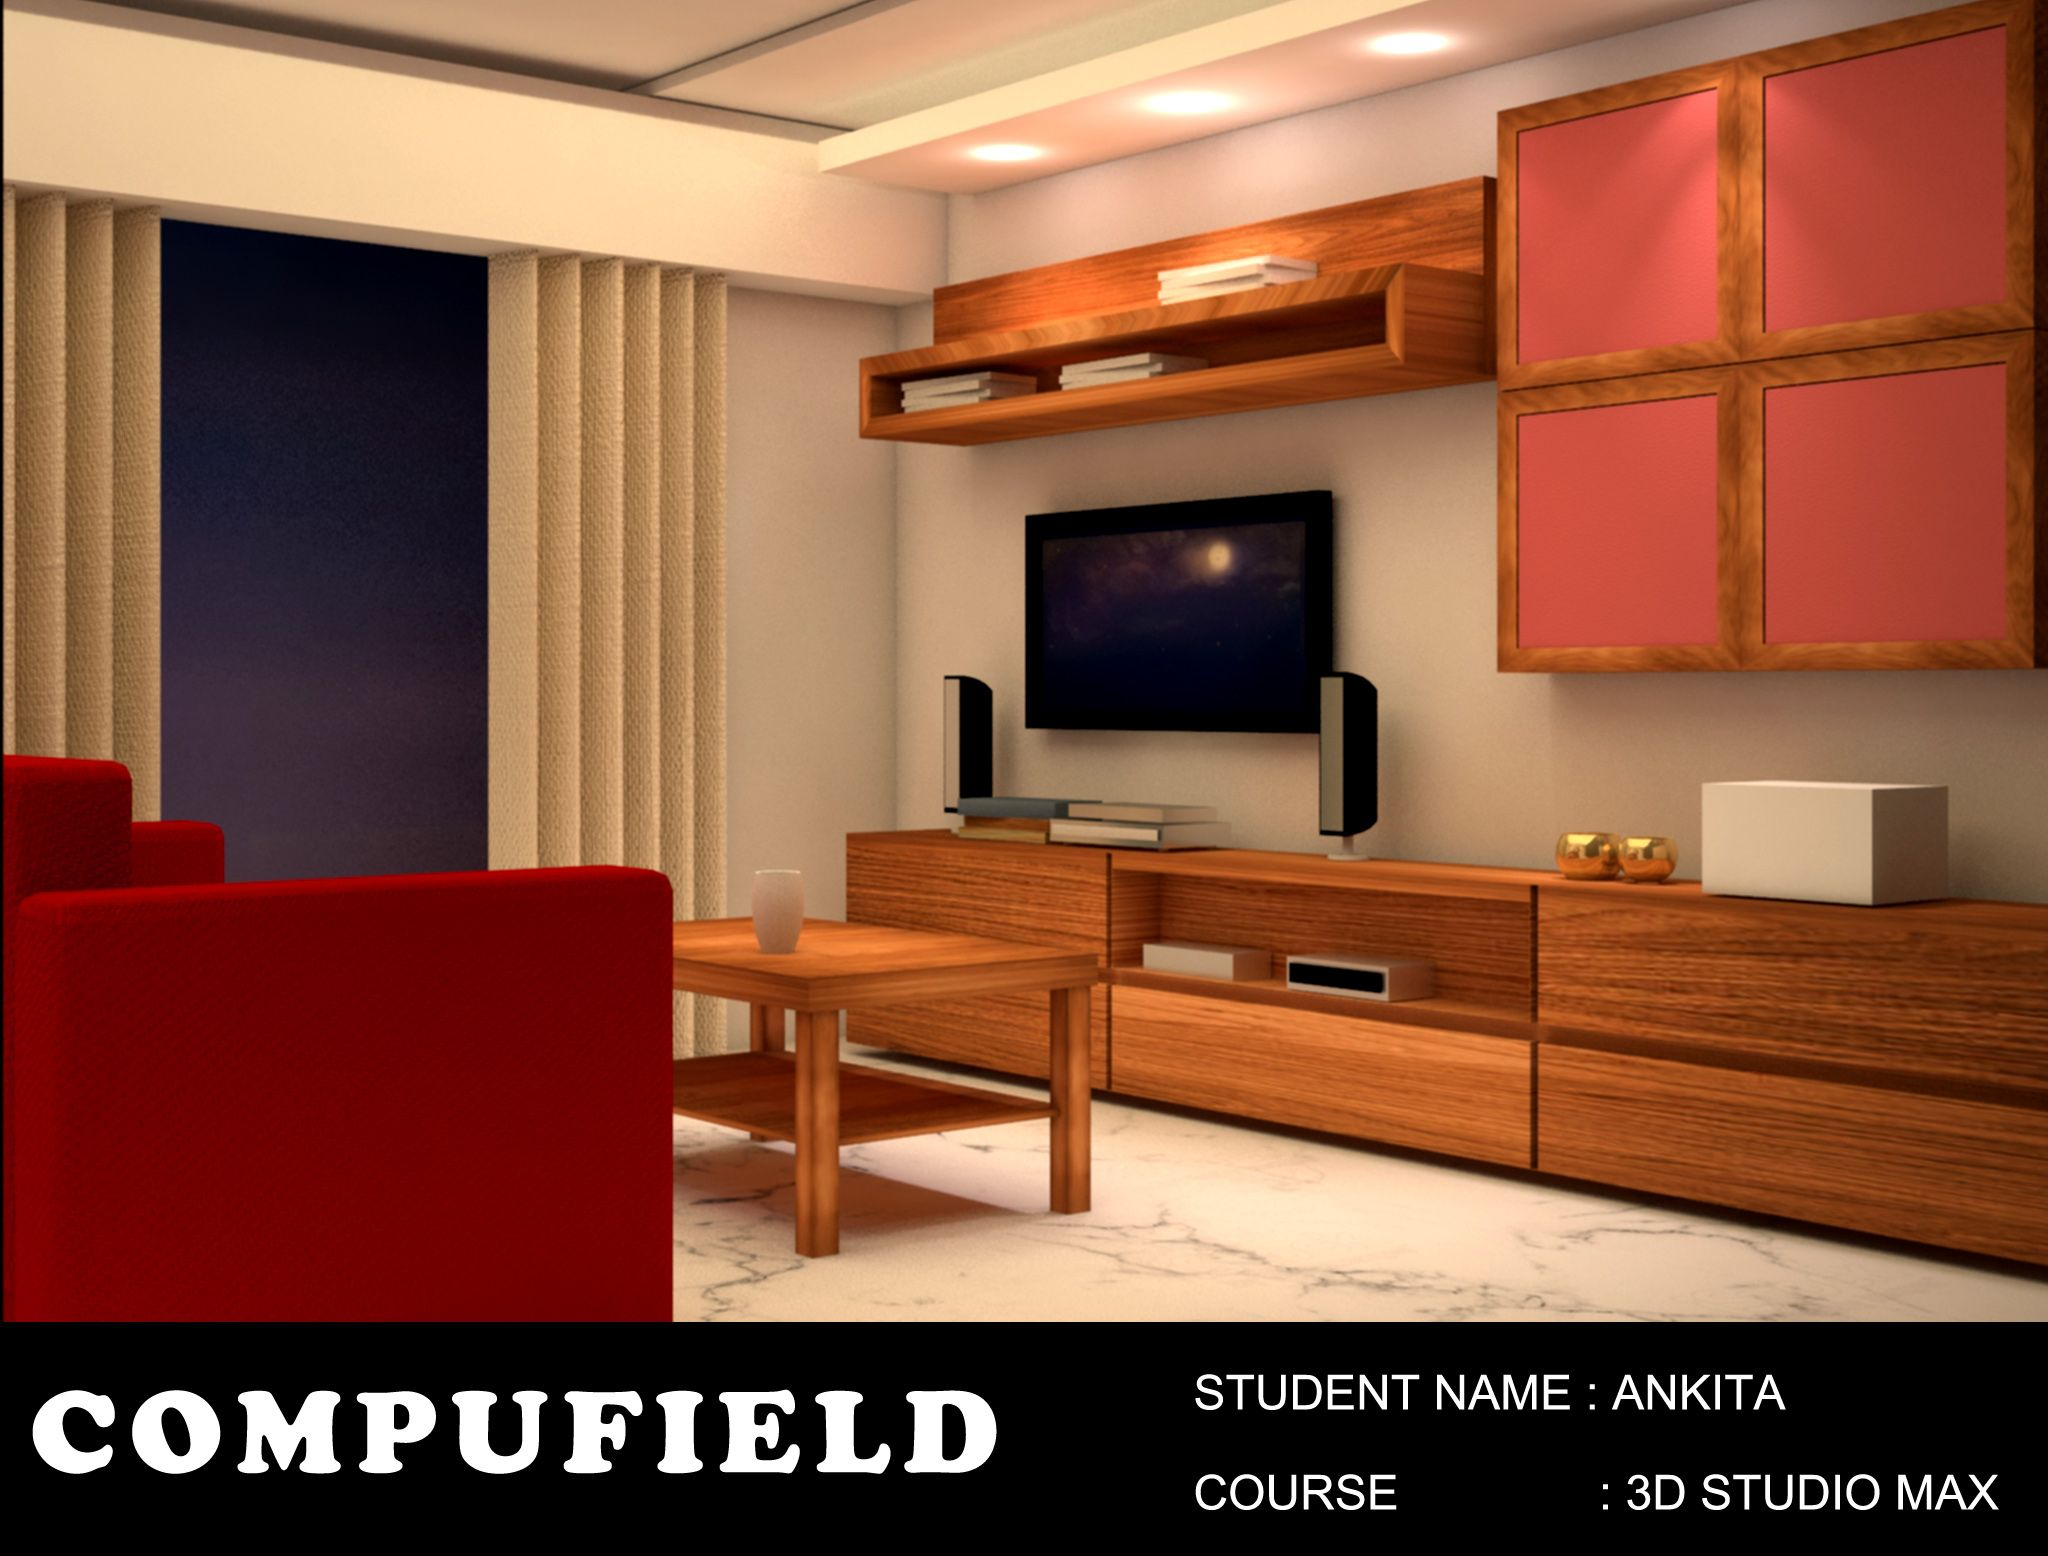 Interiordesign Project Done By Our Student Ms Ankika Using 3dstudiomax At Compufield Compu Interior Design Institute Interior Design Interior Design Courses